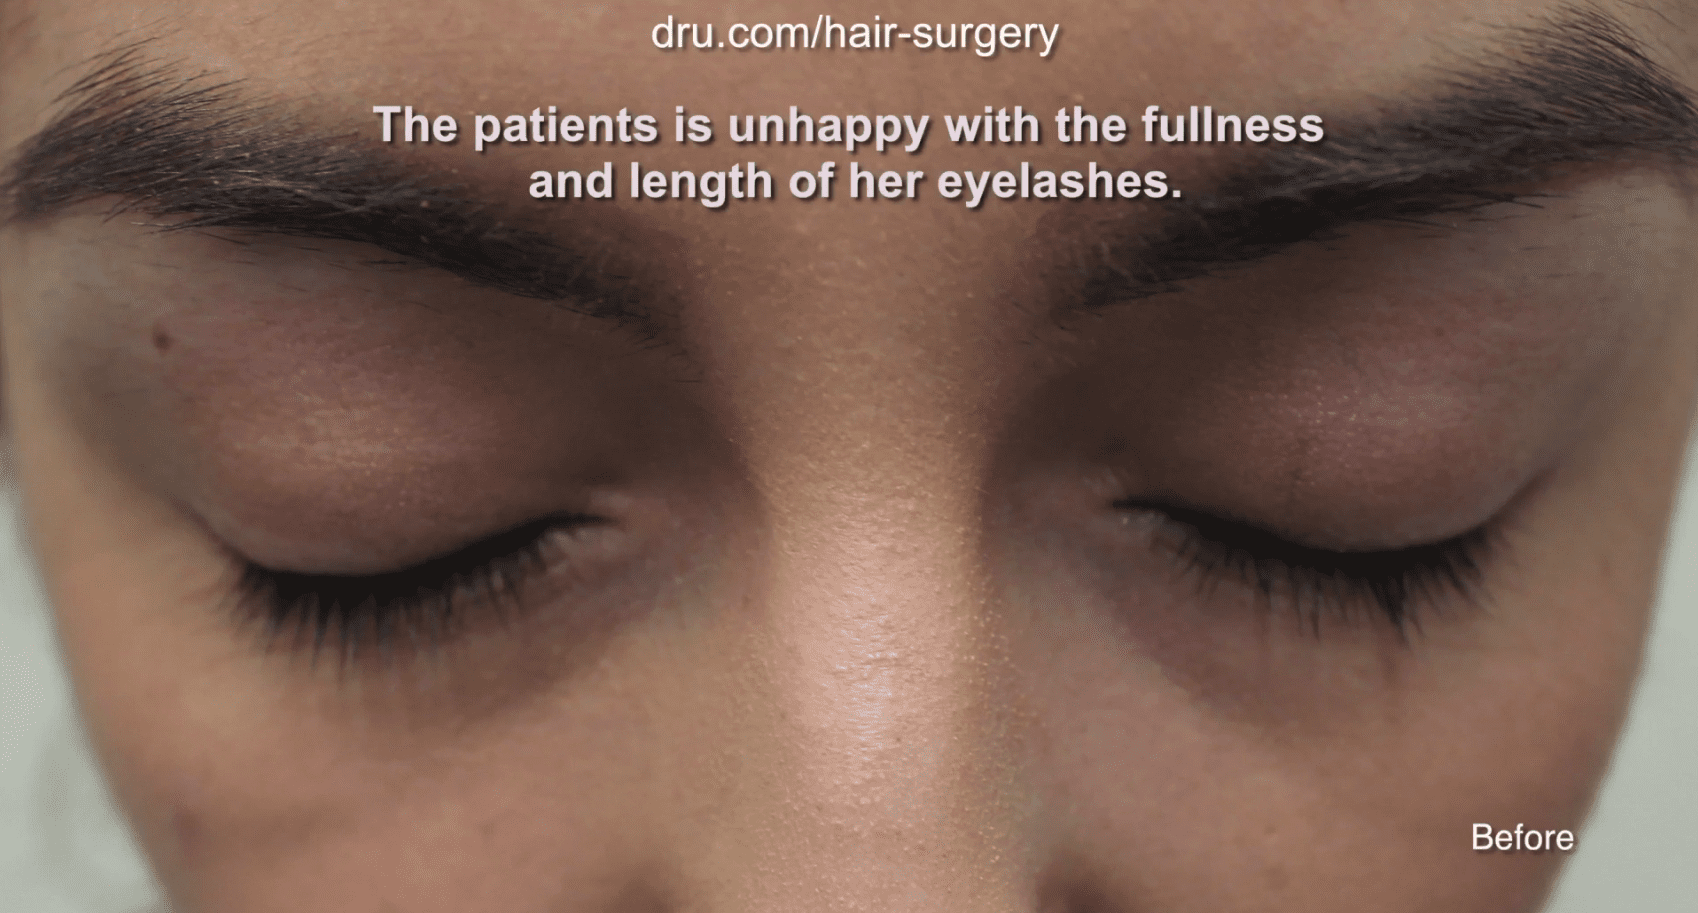 The patient was unsatisfied with the lack of density and length of her eyelashes before her eyelash hair transplantation with Dr. U.